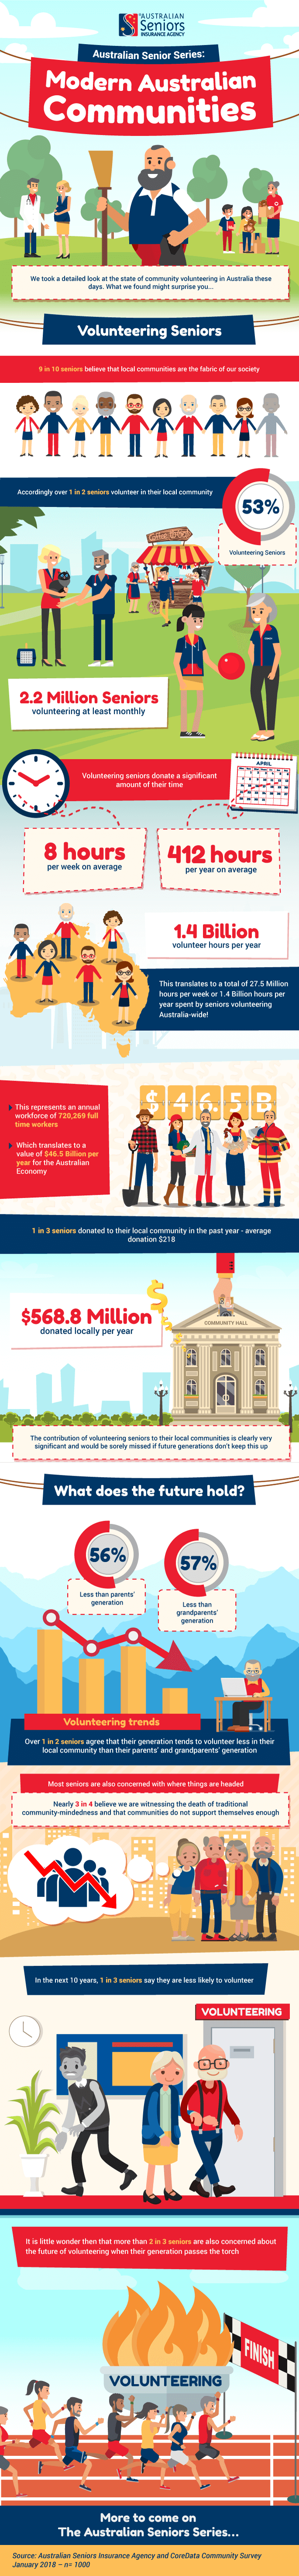 Modern Australian Communities [infographic]